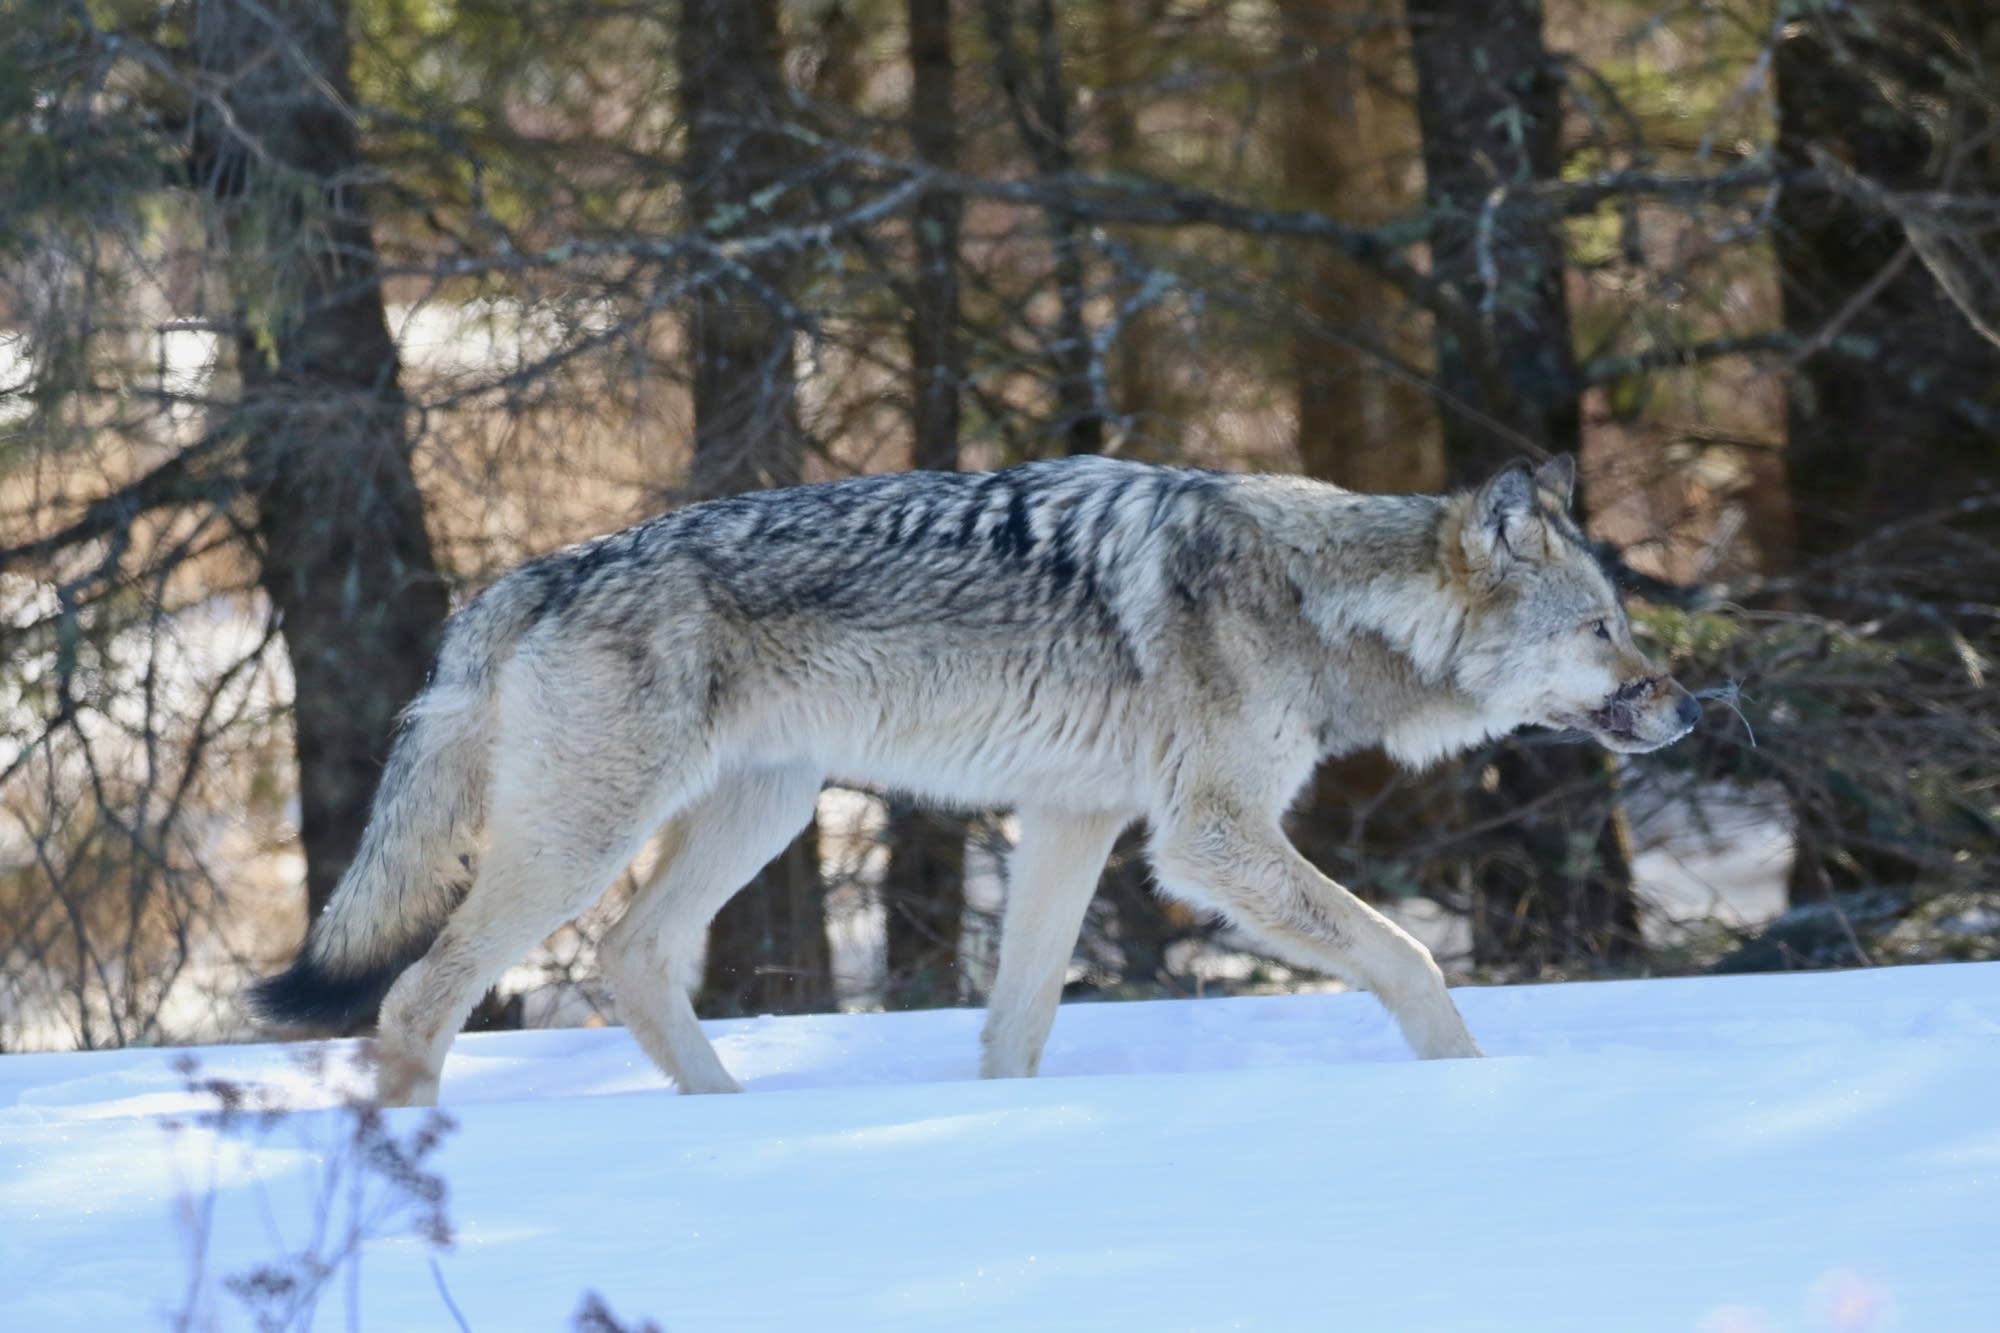 The wolf was eventually shot and killed by a Duluth police officer.